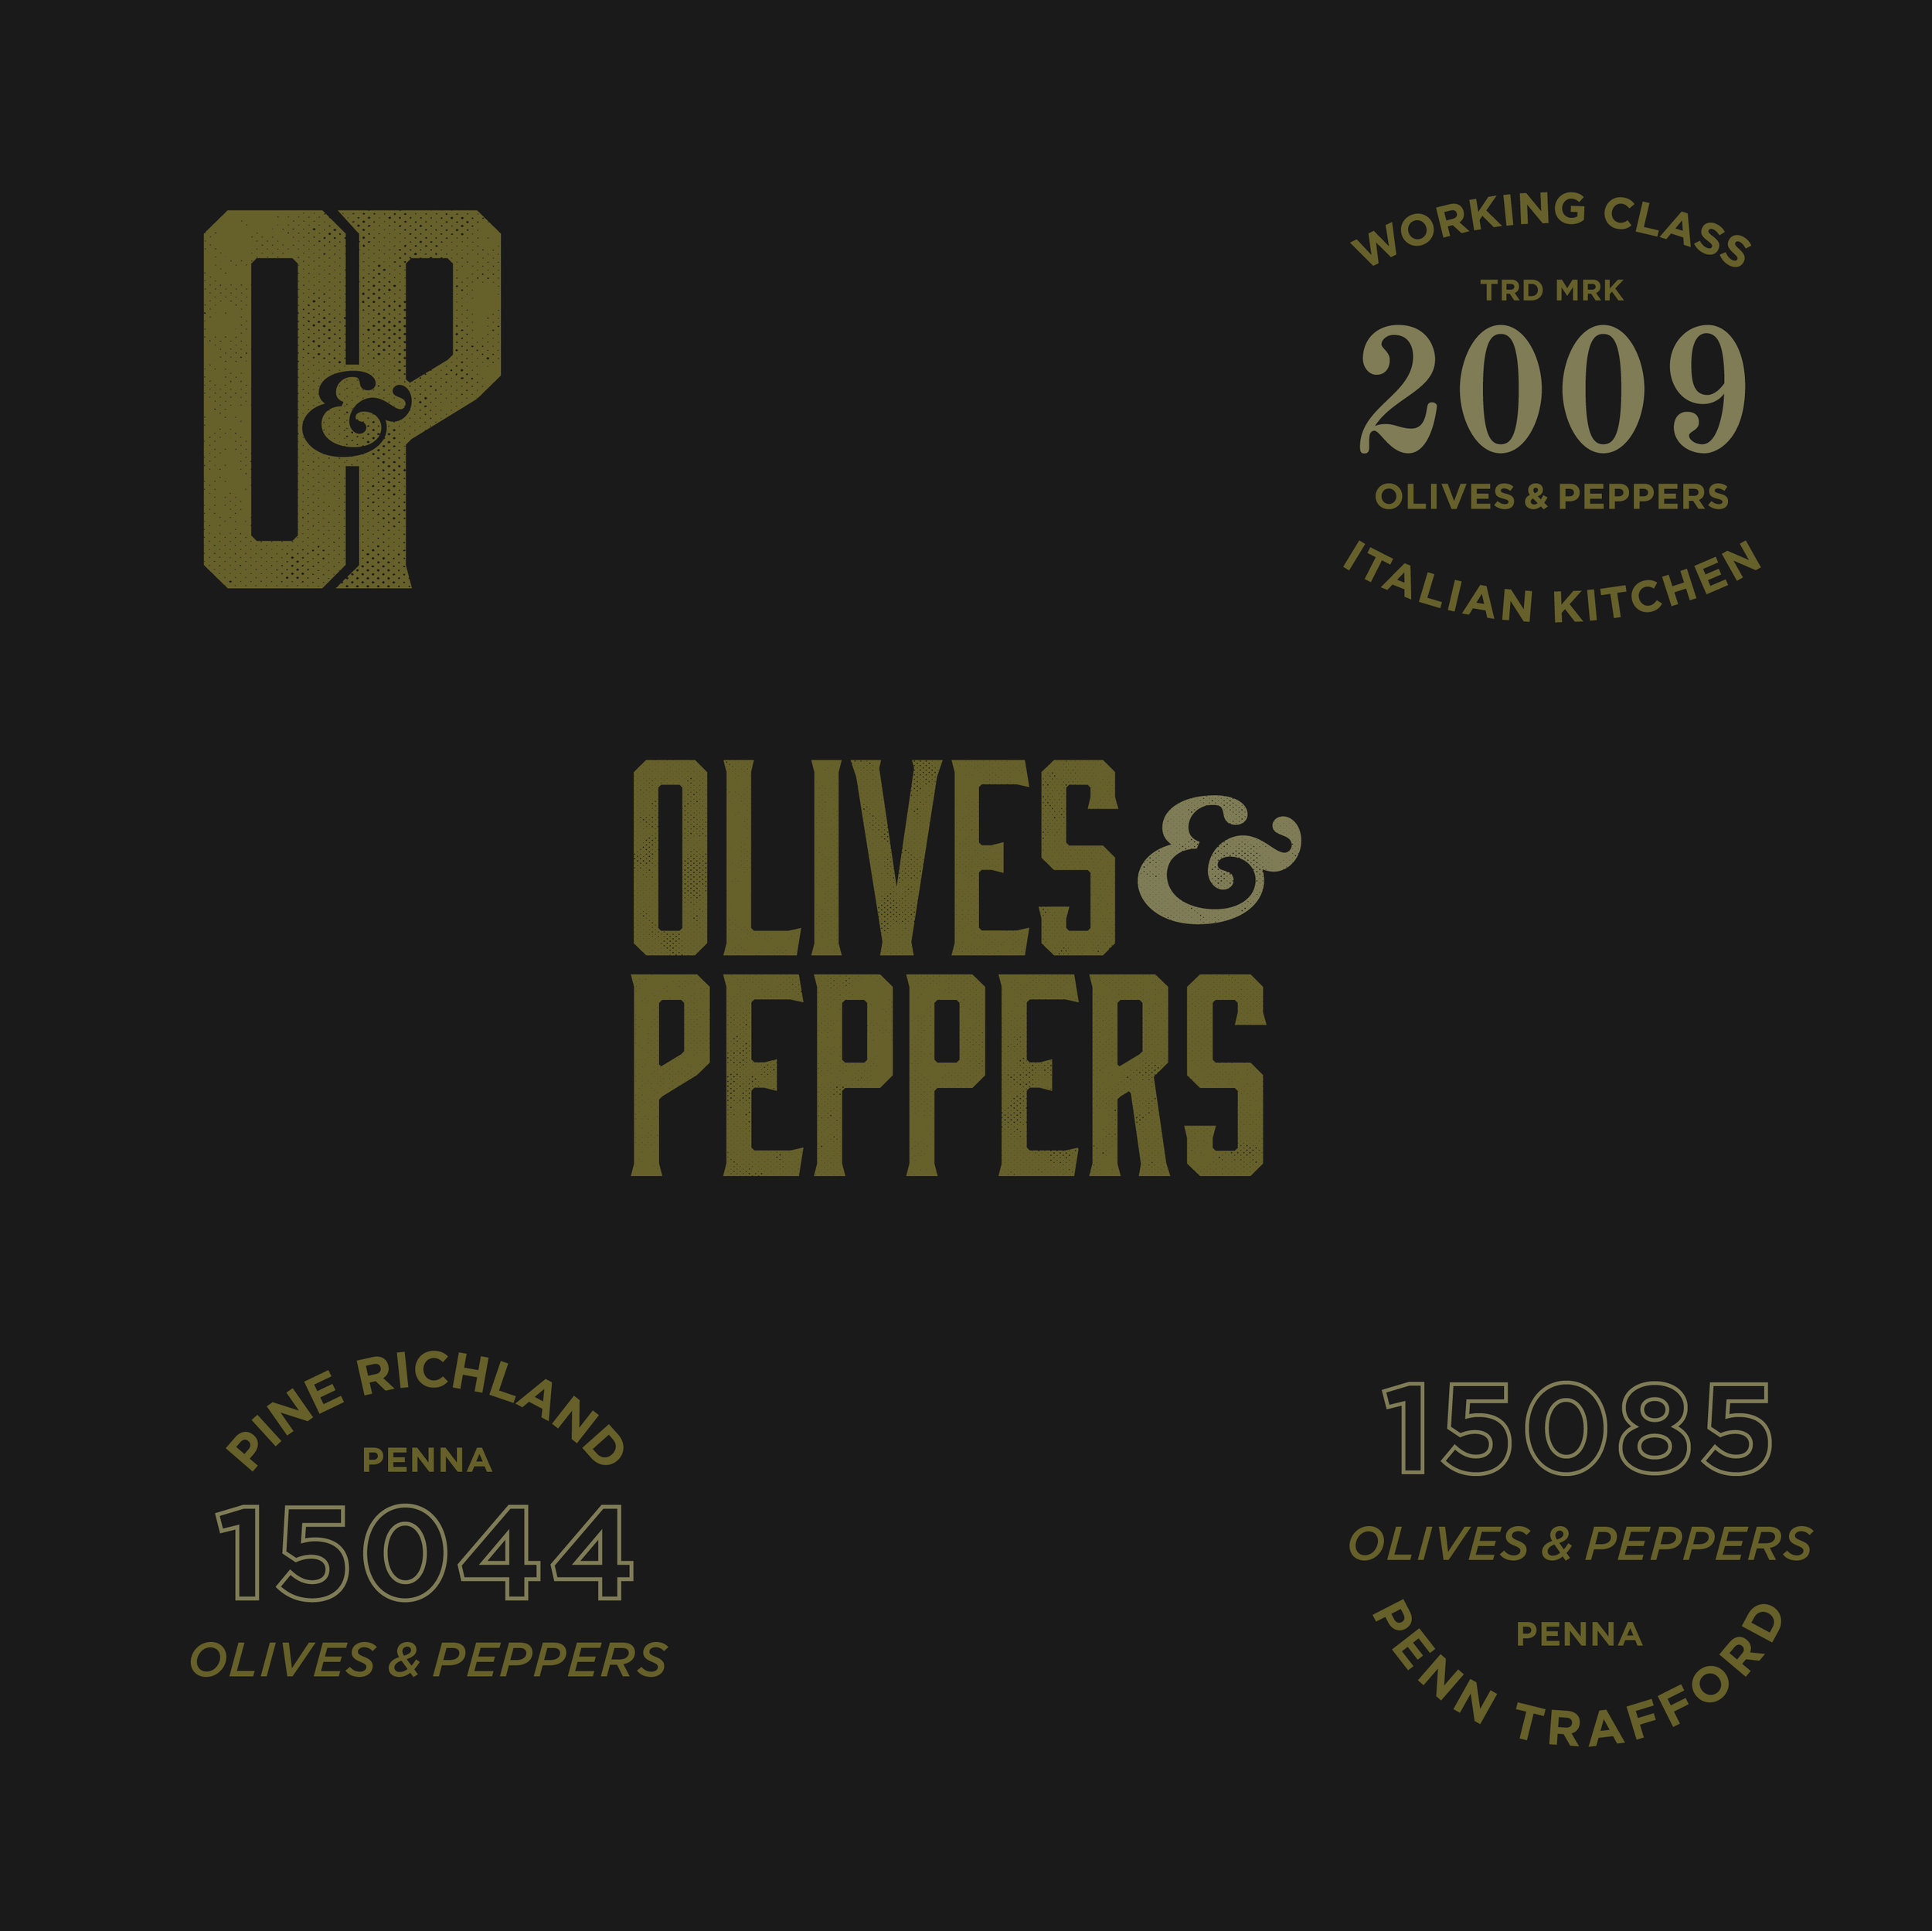 restaurant_branding_olives and peppers_bootstrap design co-02.jpg